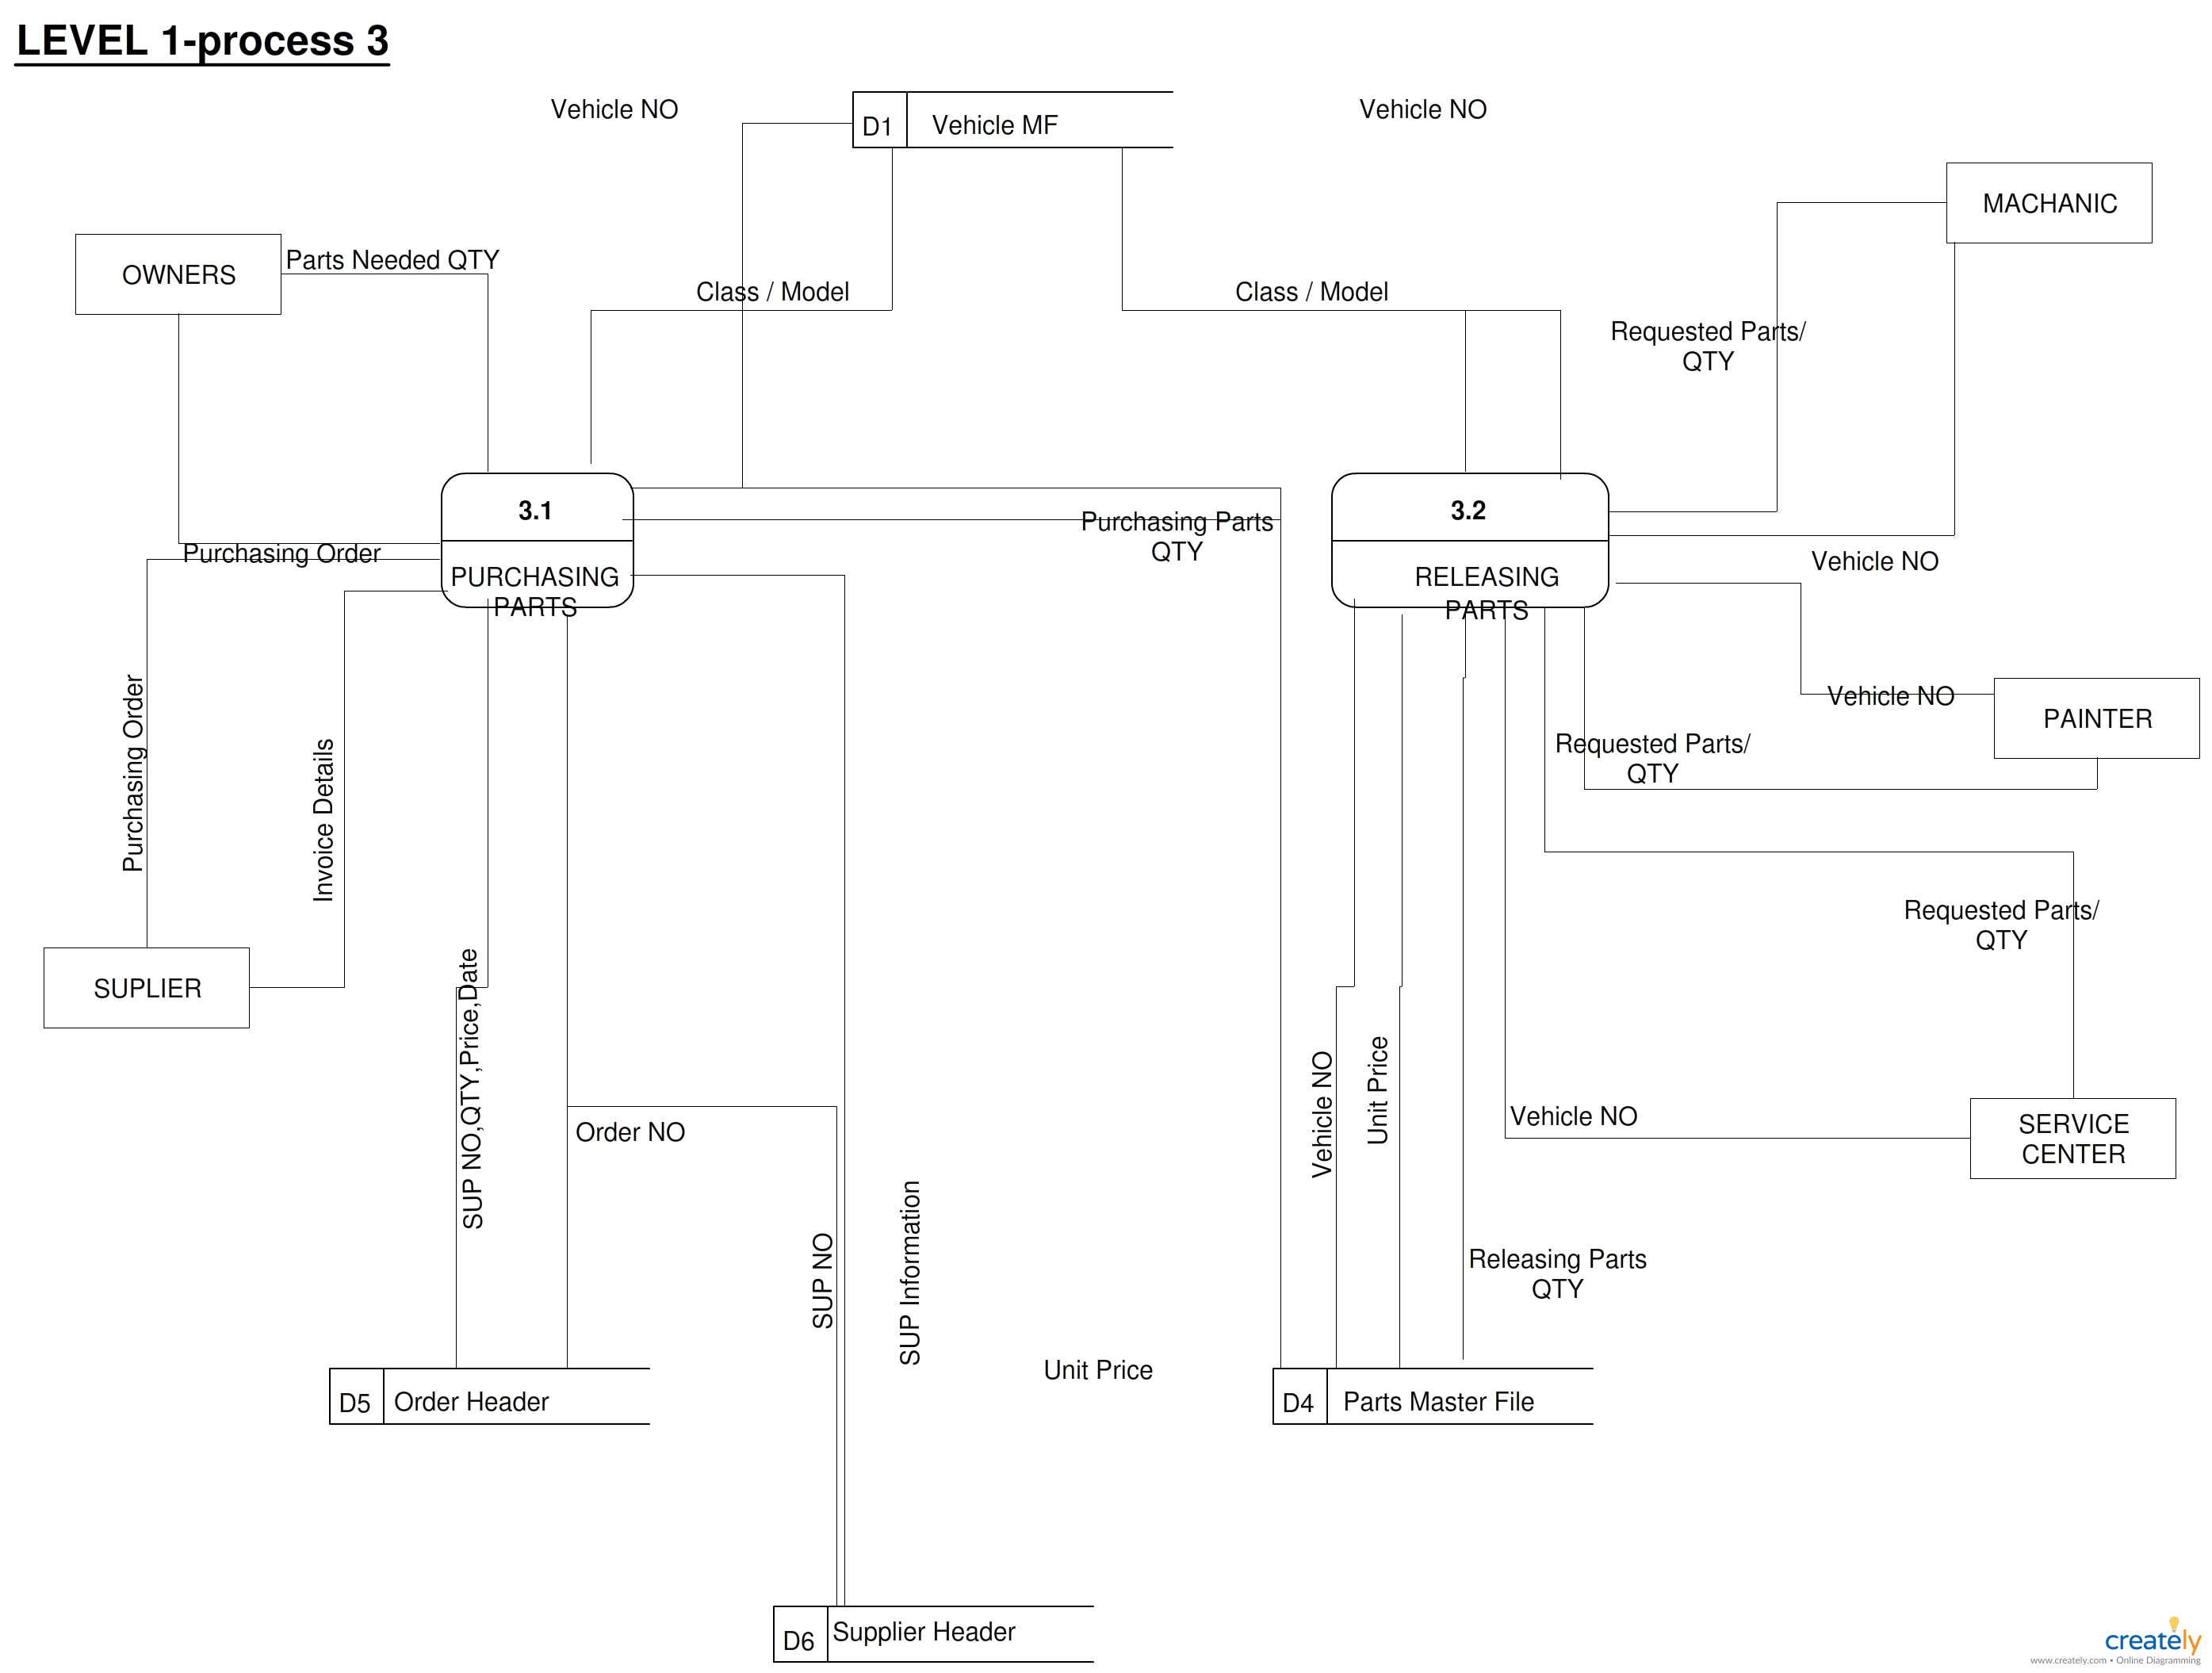 Data Flow Diagram (DFD) for Vehicle Service Center or